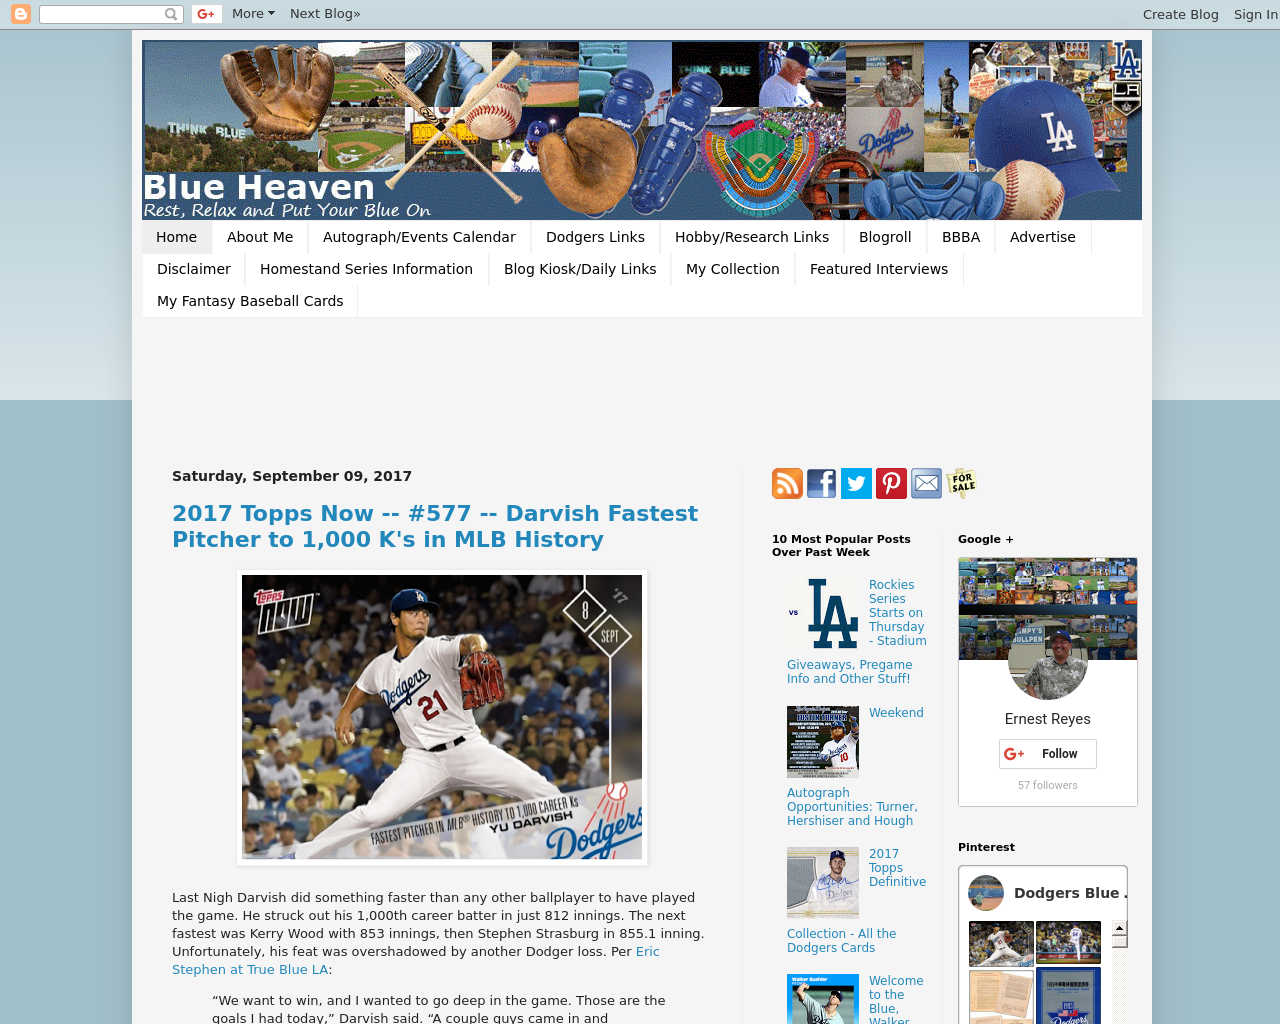 Dodgers-Blue-Heaven-Advertising-Reviews-Pricing